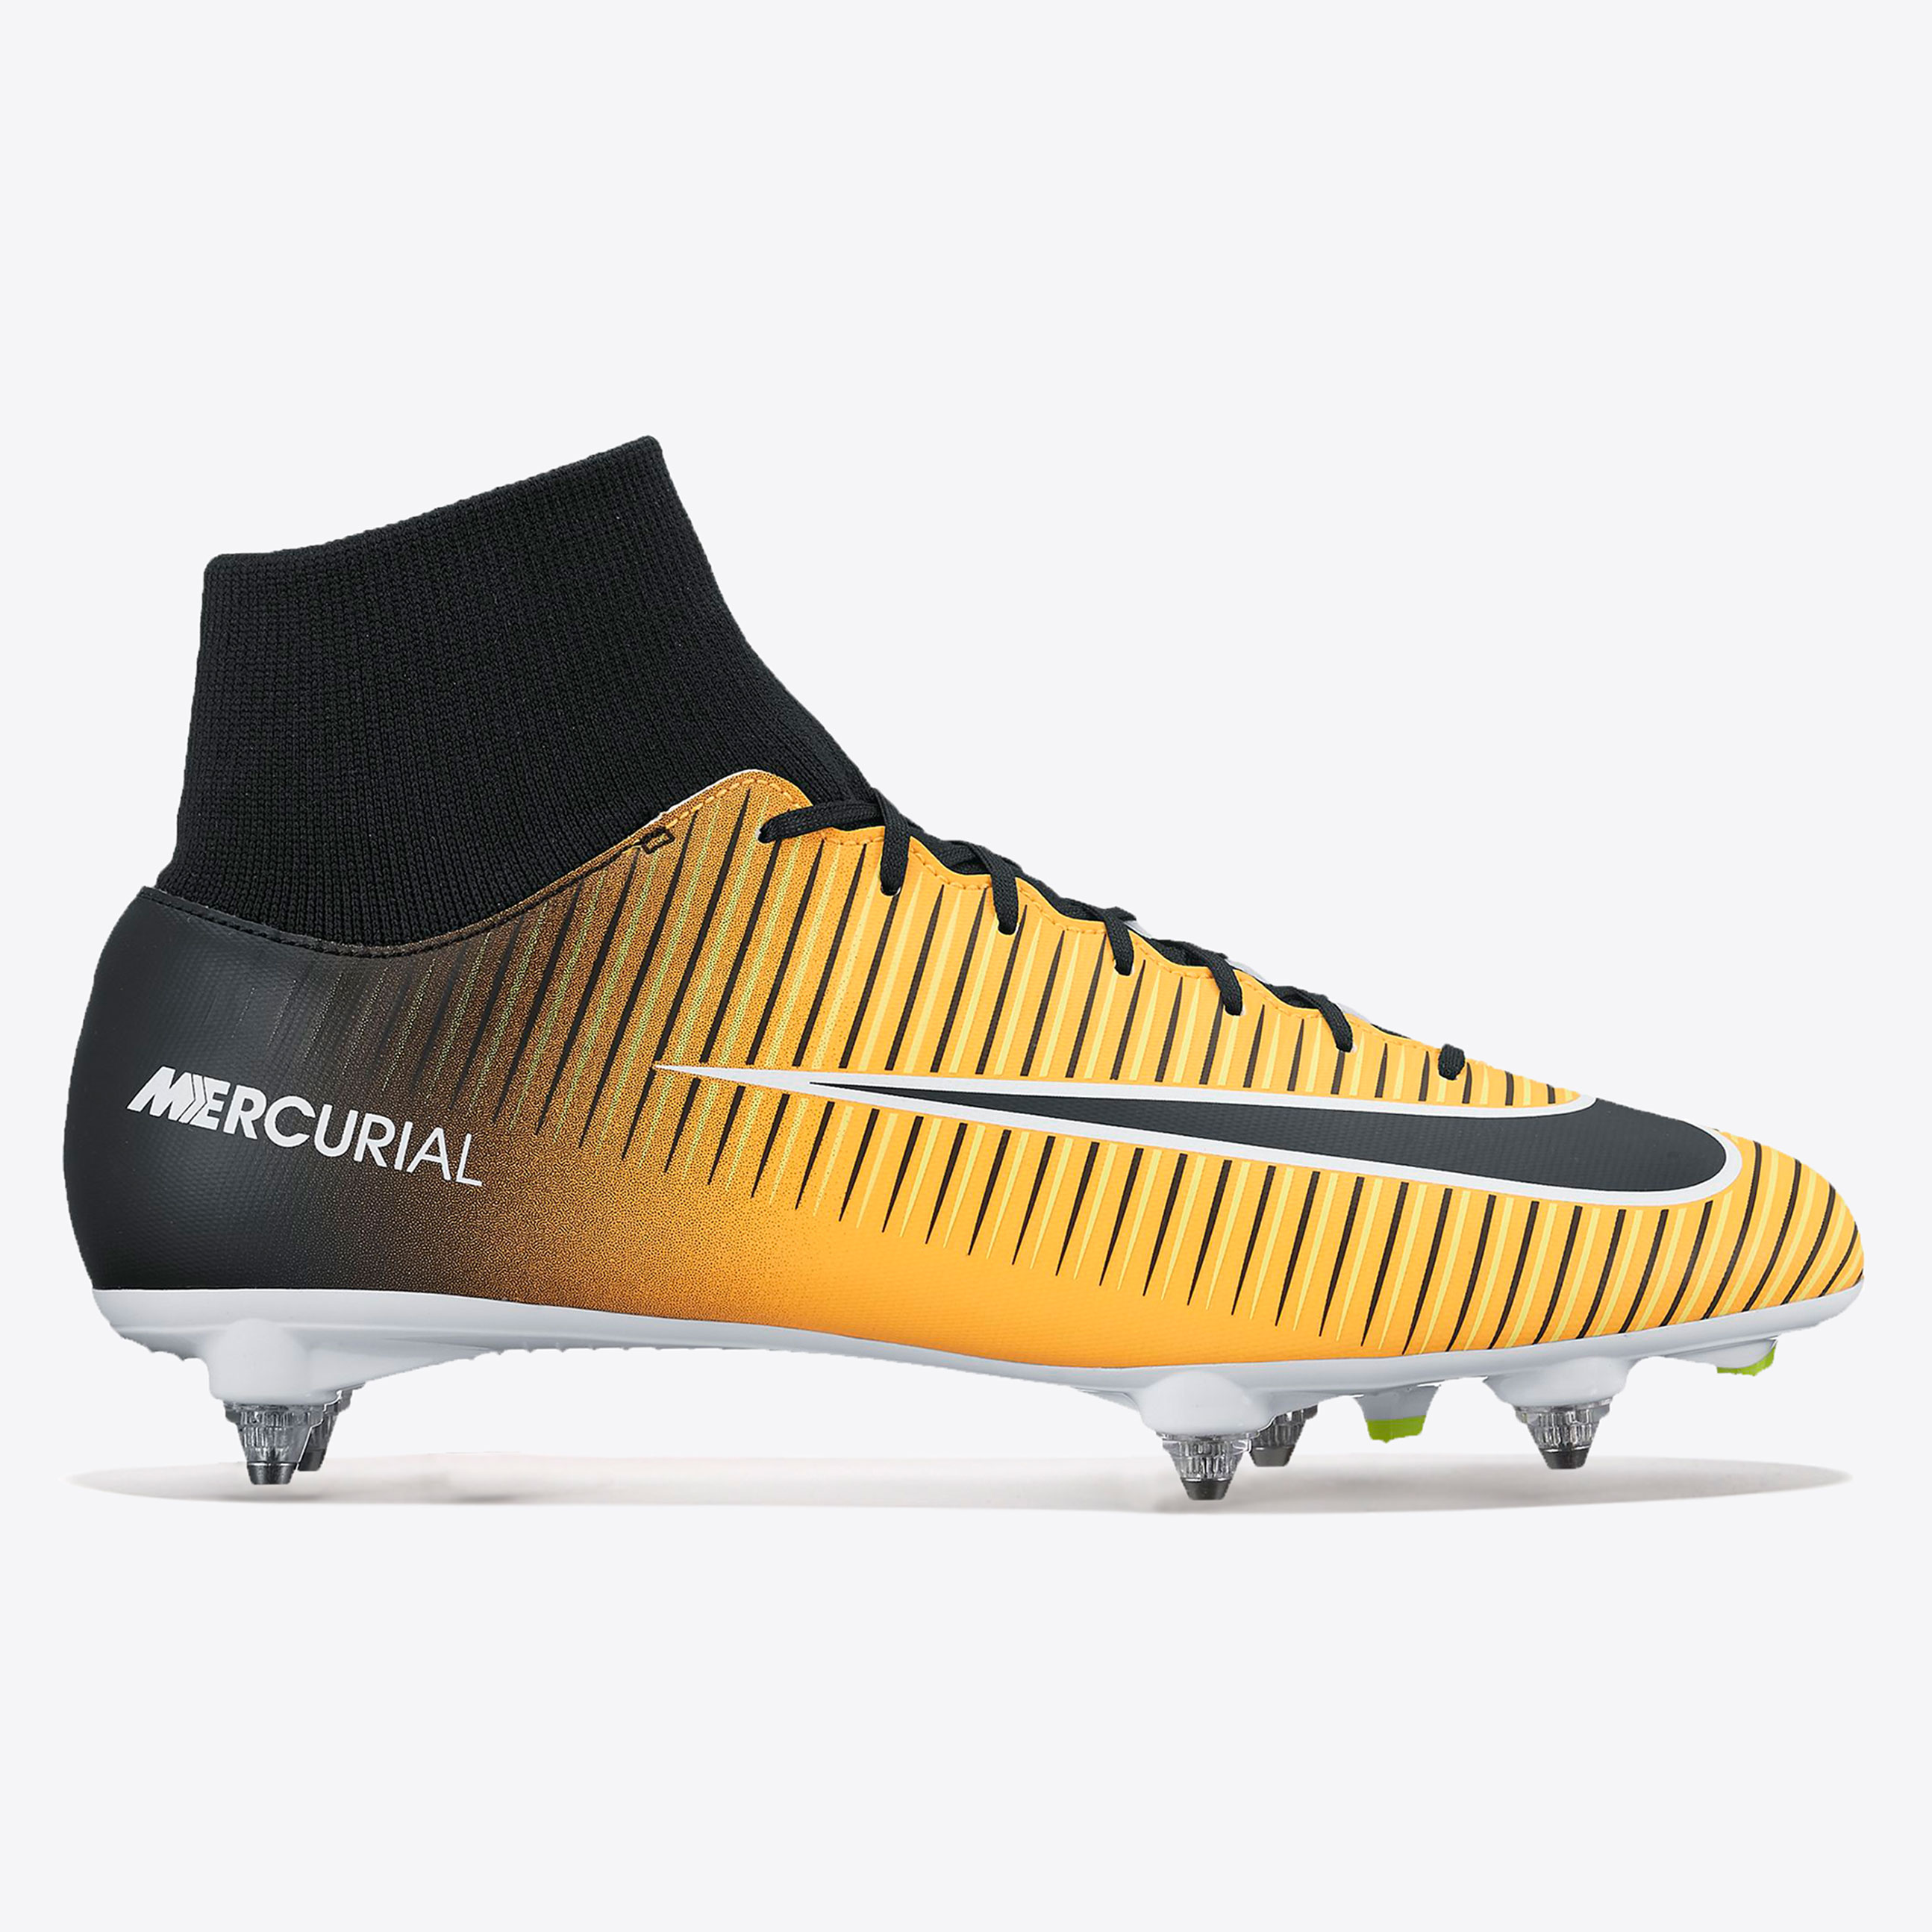 Nike Mercurial Victory VI Dynamic Fit Soft Ground Football Boots - Las